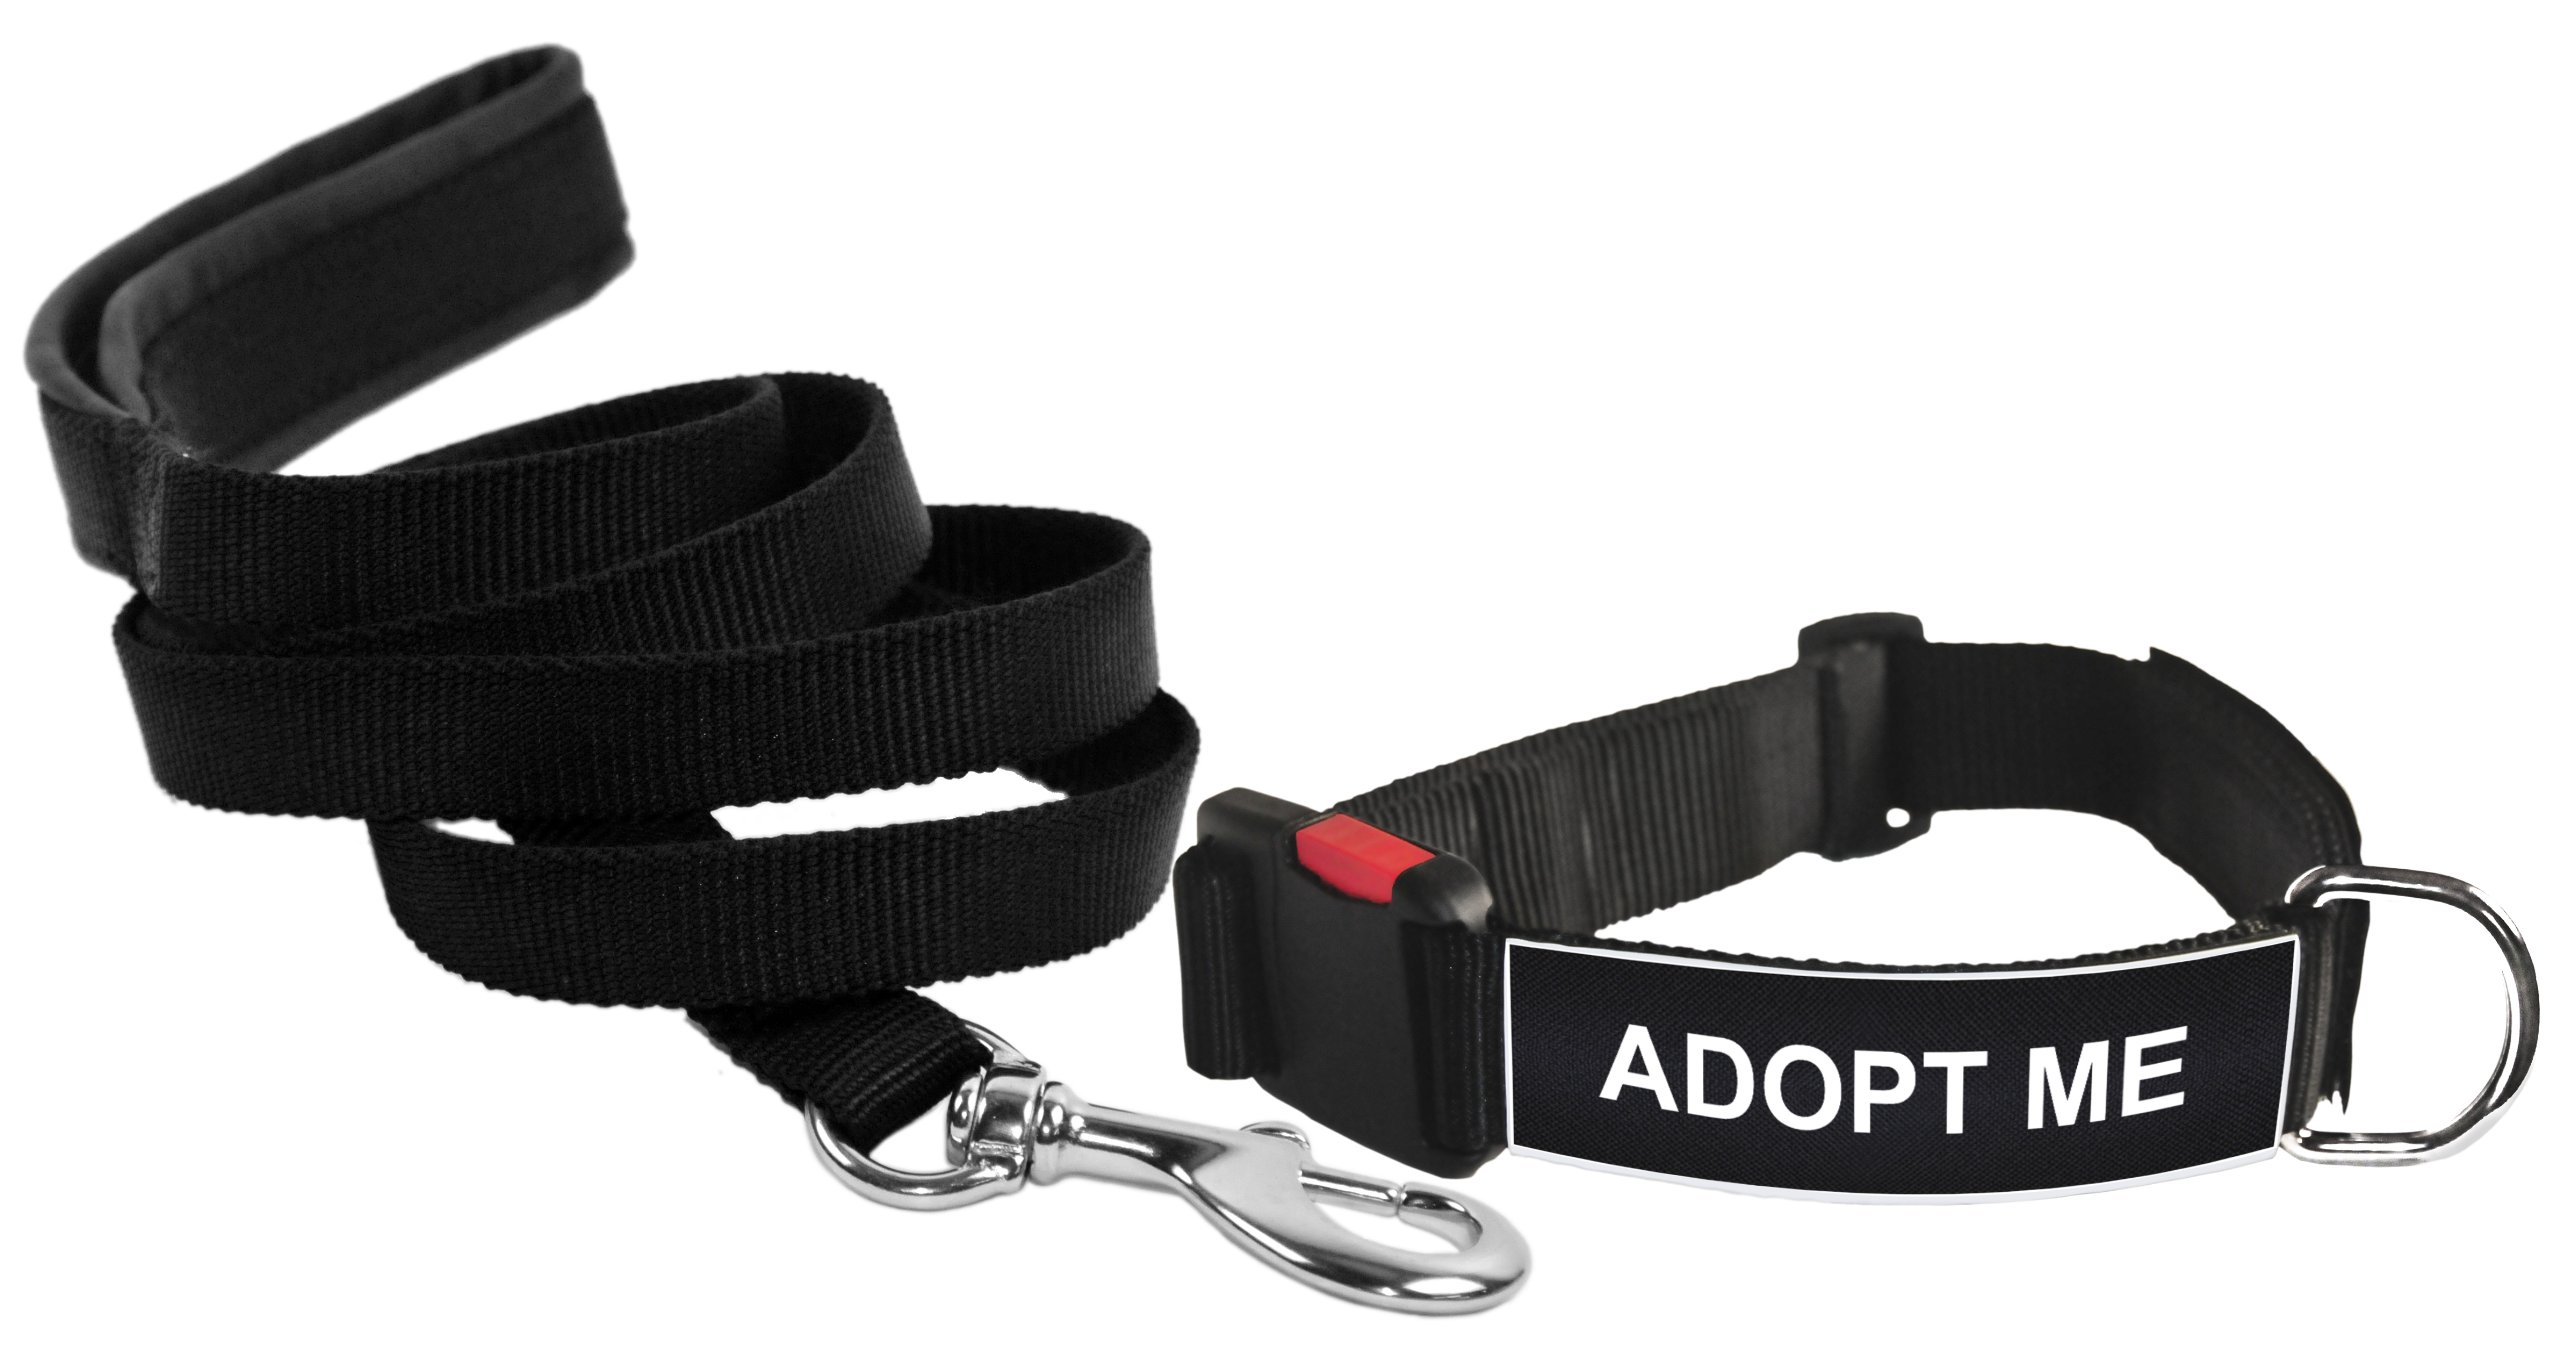 Dean & Tyler Adopt Me Small Patch Dog Collar with 6-Feet Padded Puppy Leash, Black